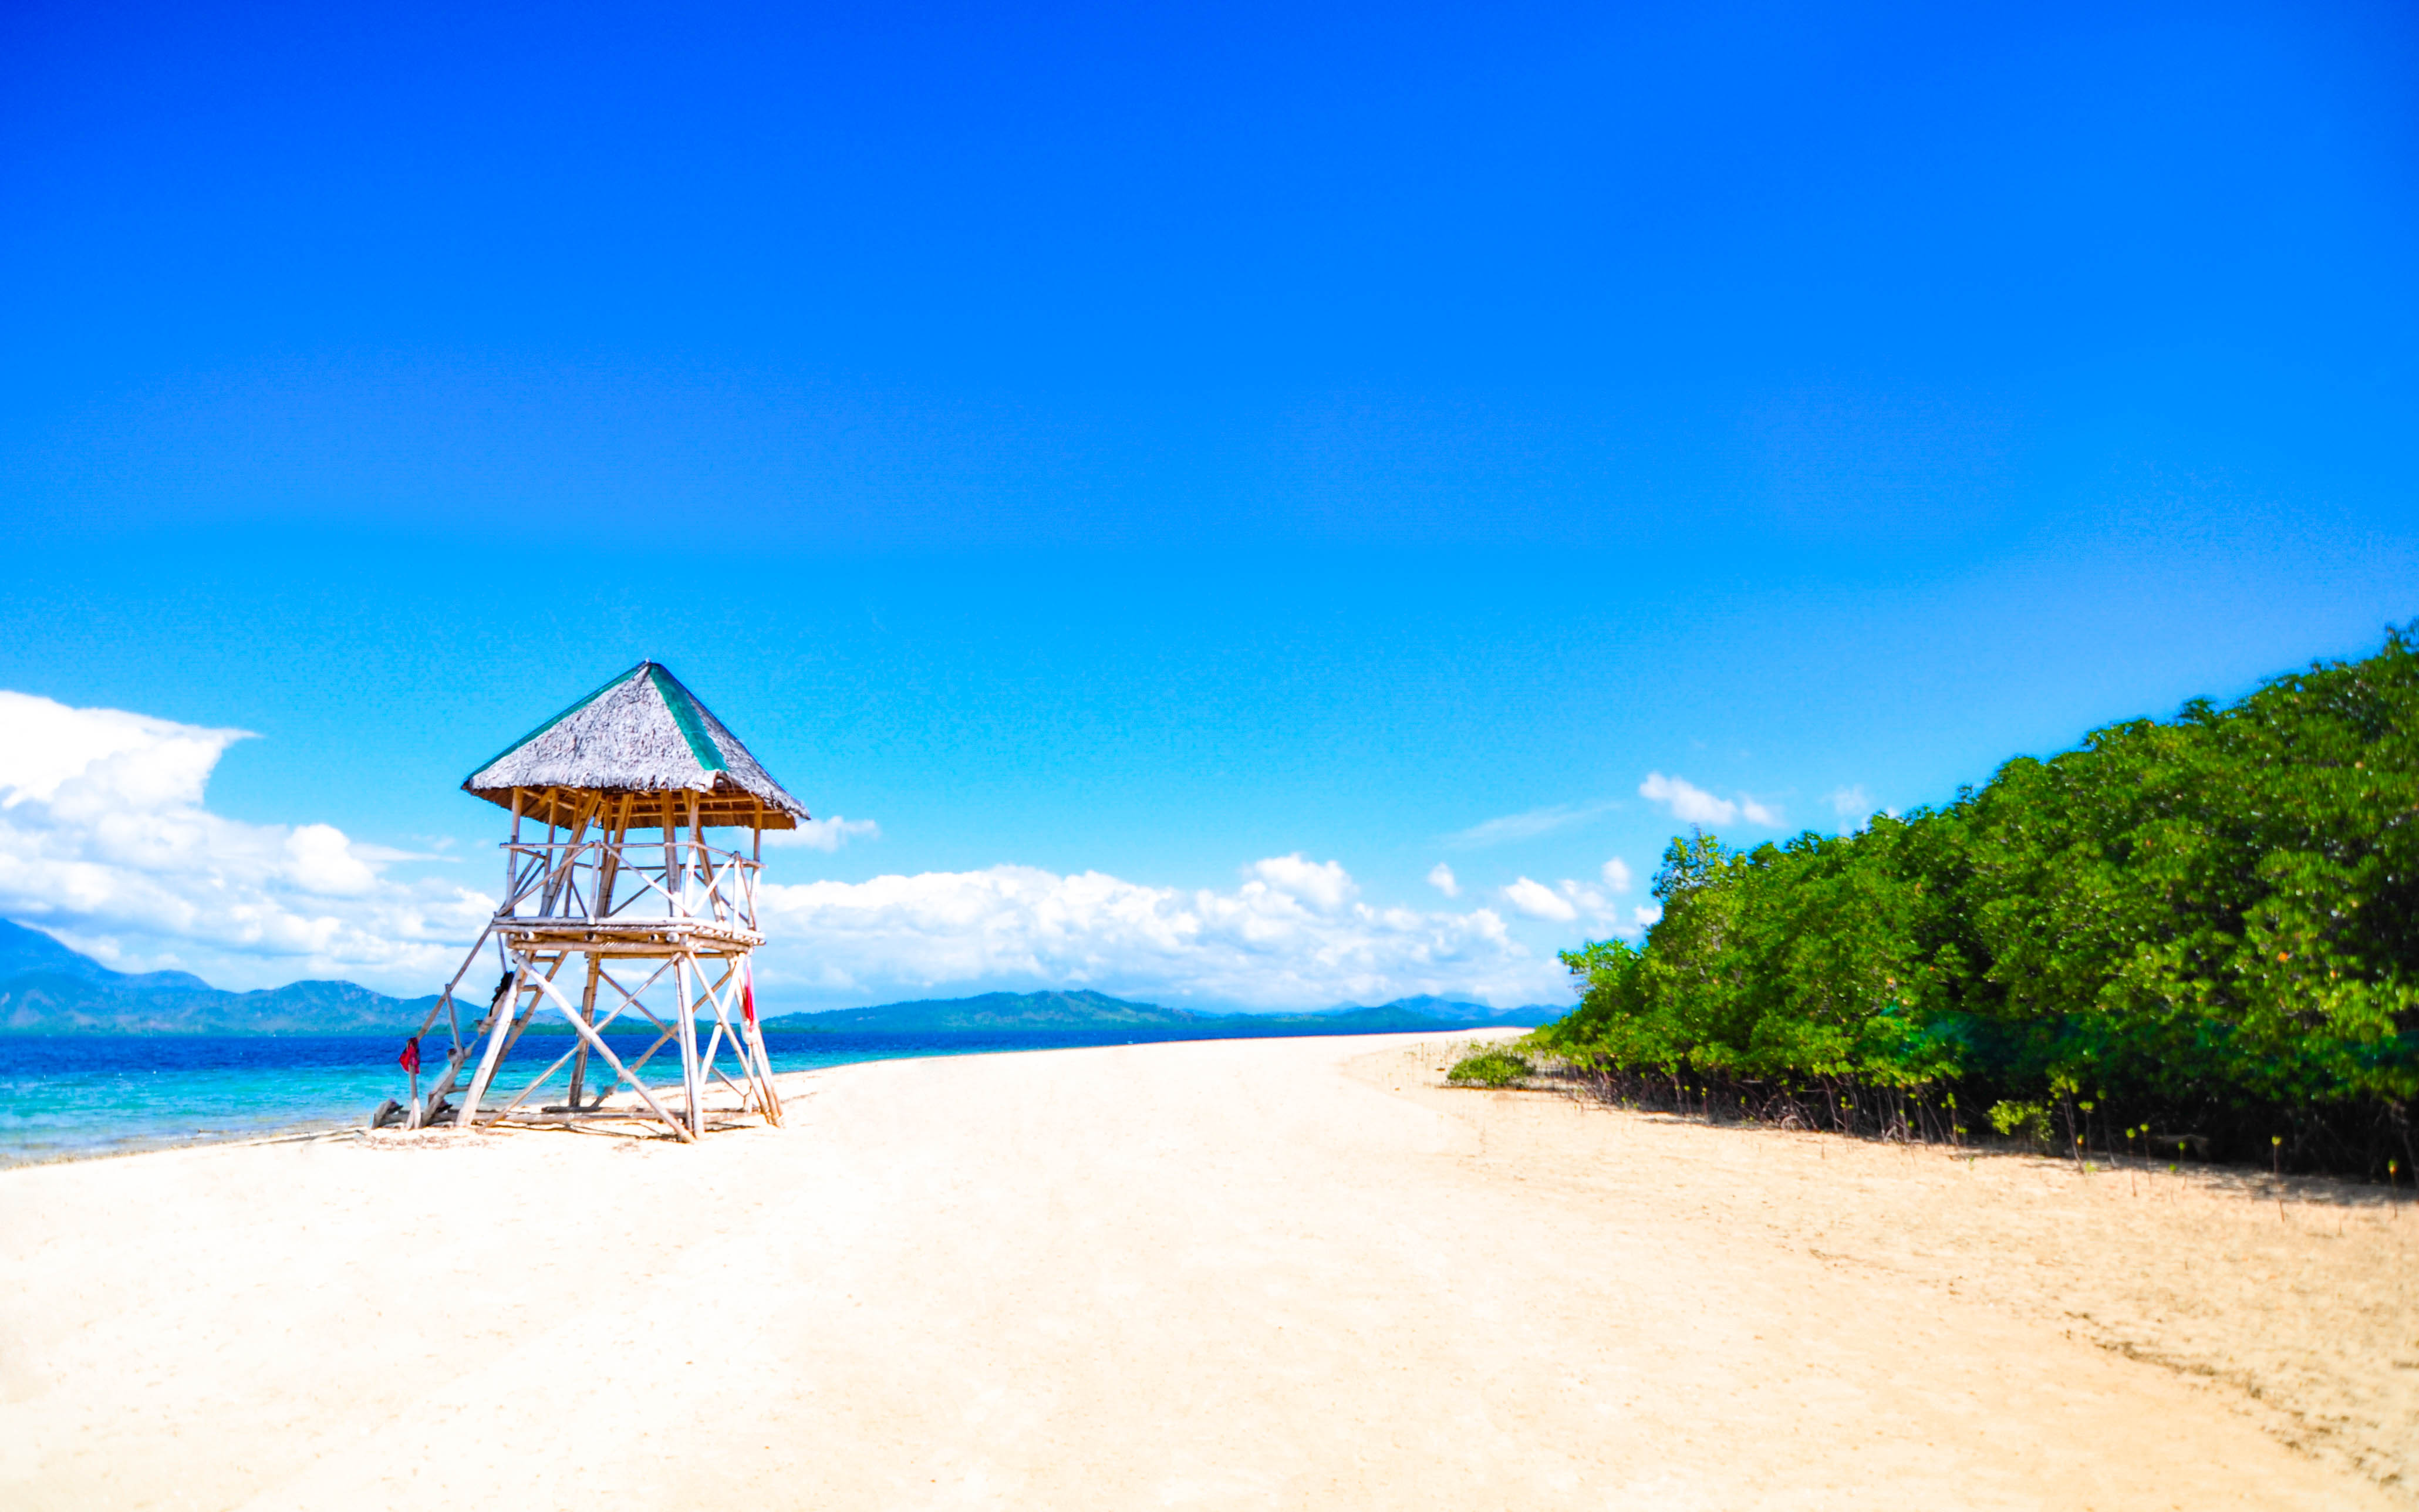 White sand beach with a lifeguard tower and vegetation beneath a blue sky